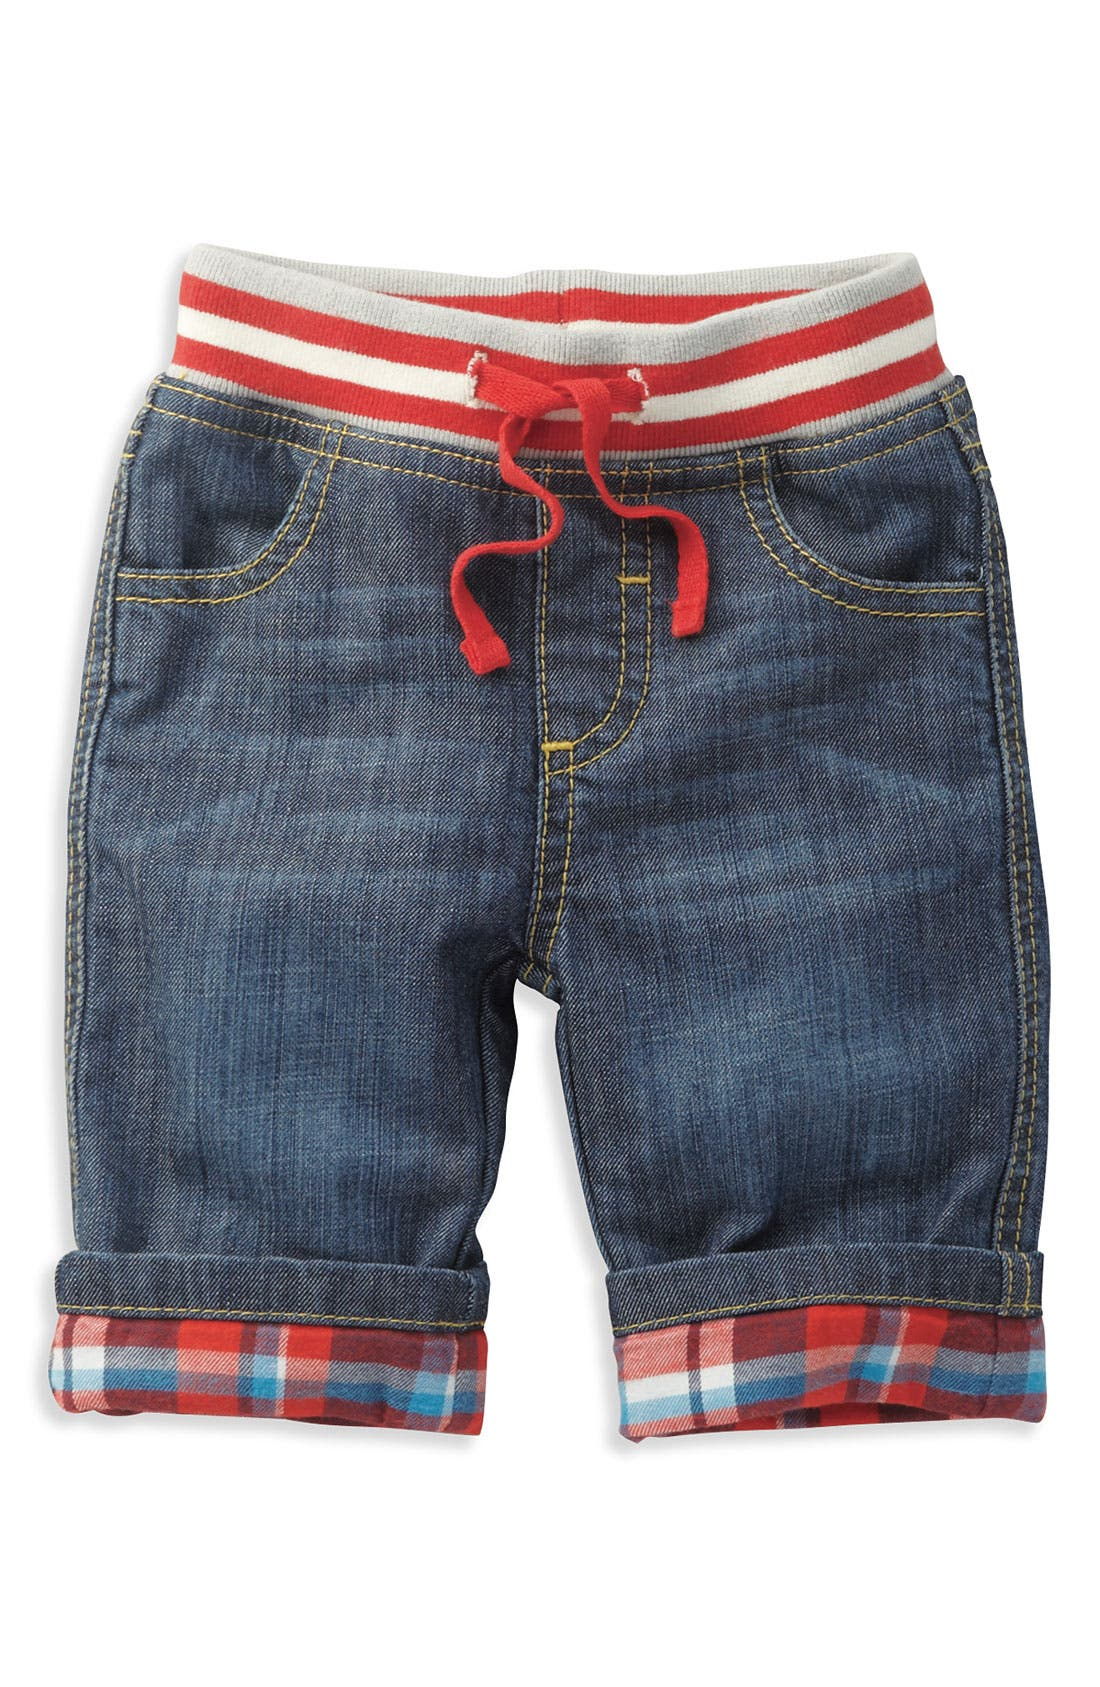 Alternate Image 1 Selected - Mini Boden Lined Jeans (Infant)